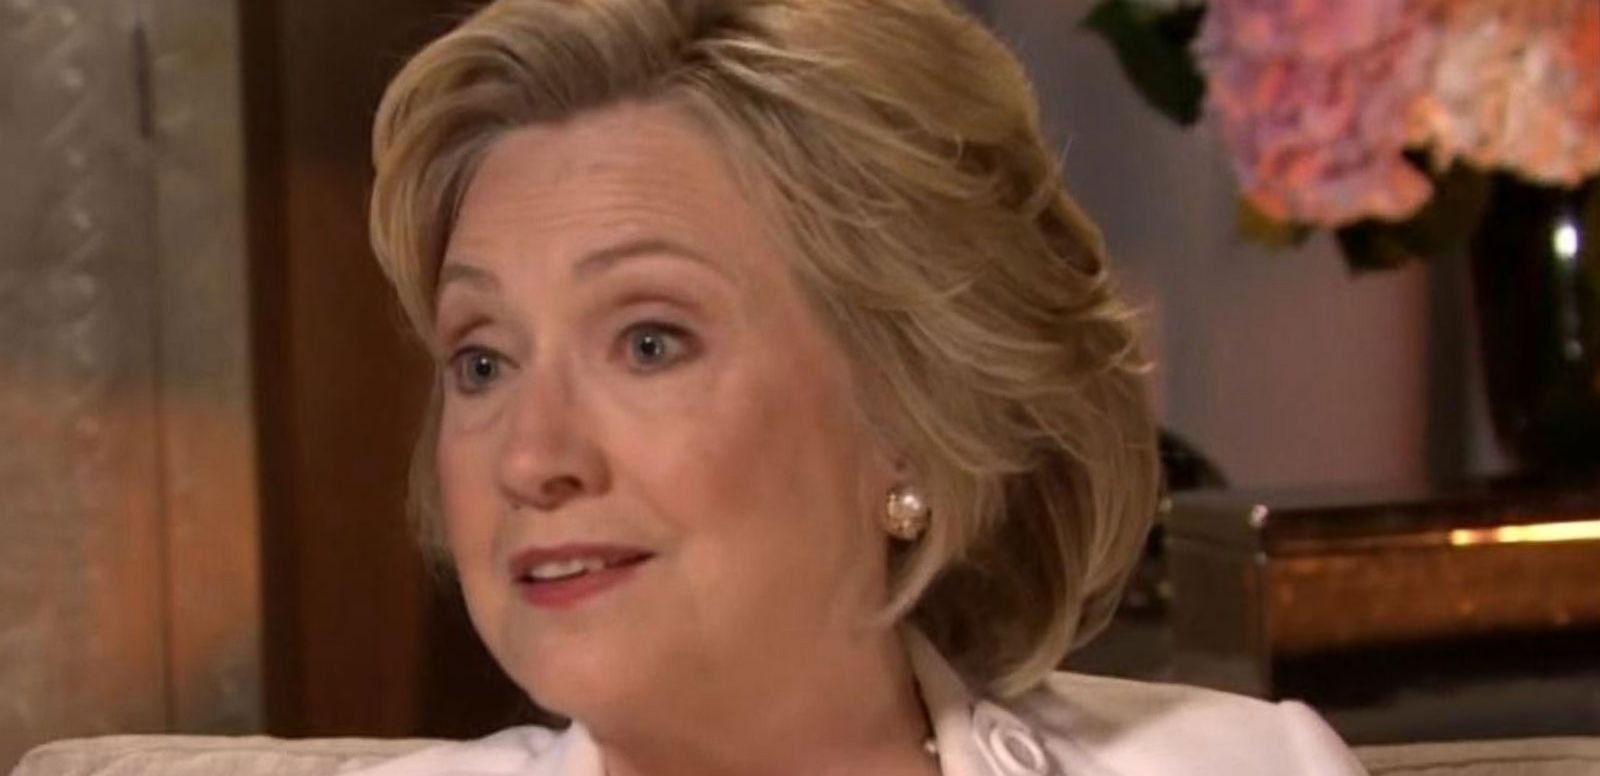 VIDEO: Hillary Clinton Addresses Email Scandal in New Sit-Down Interview